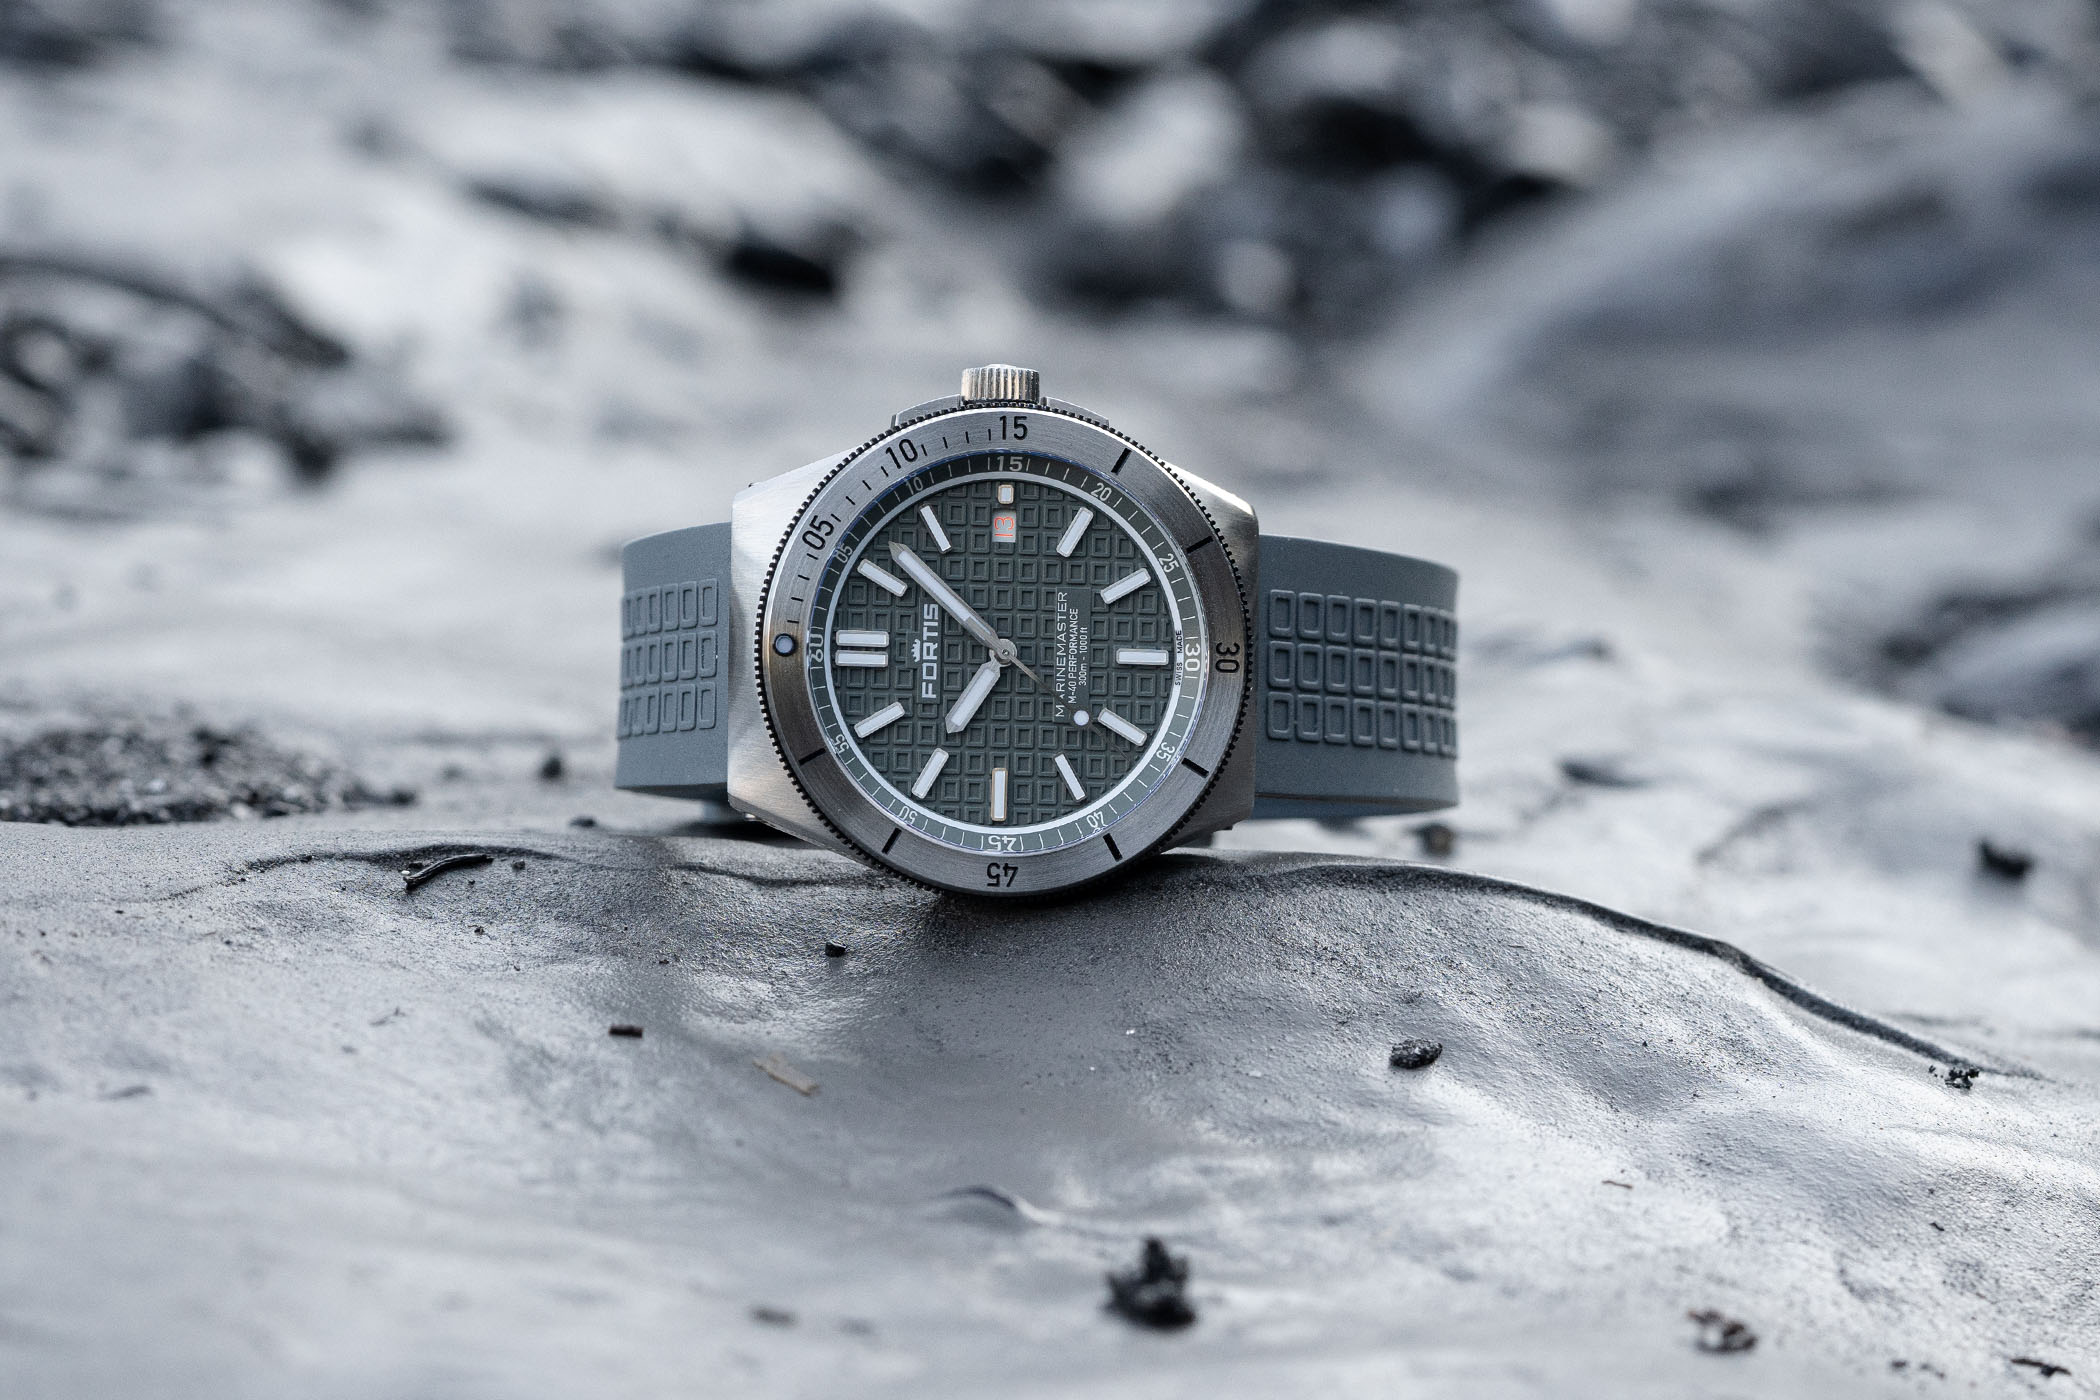 Fortis Marinemaster M-40 Collection - Introducing